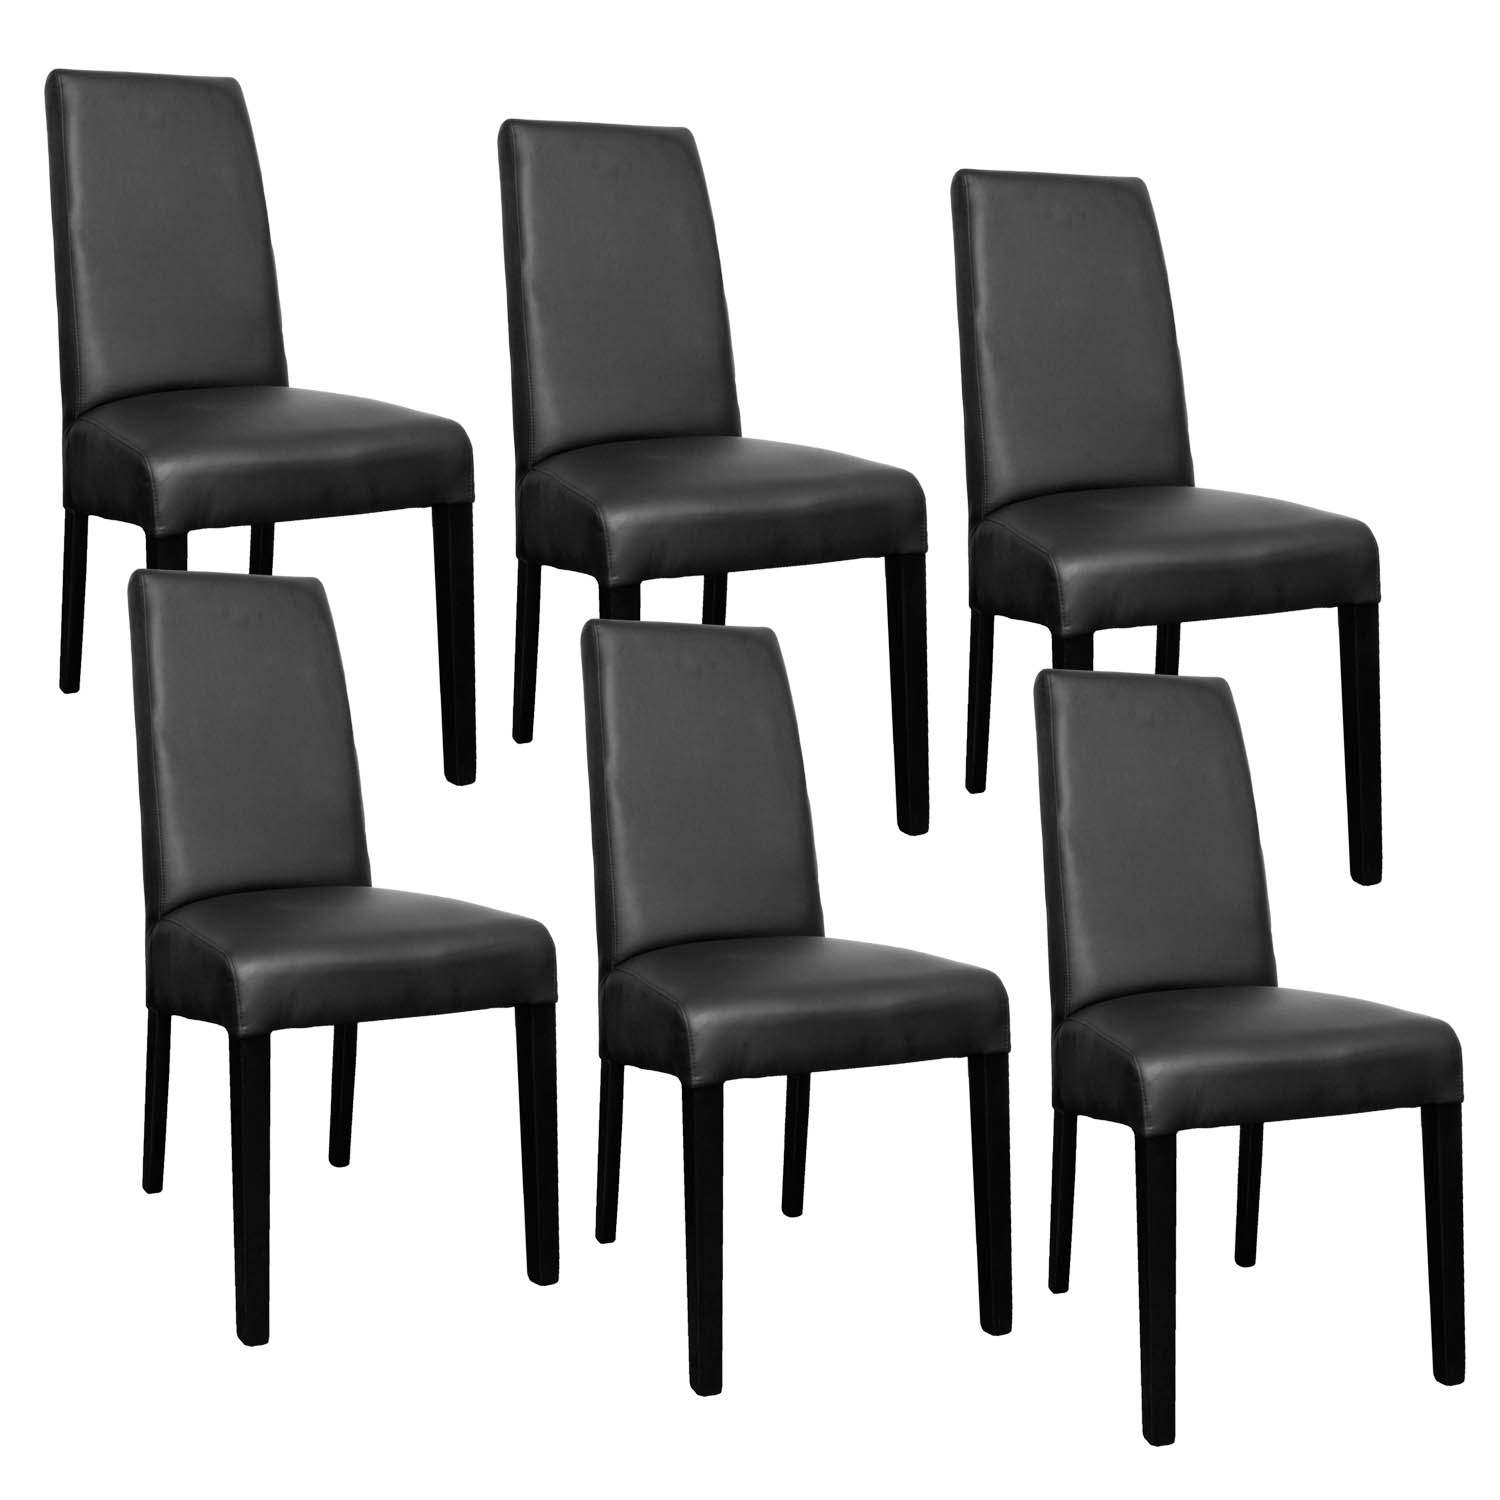 deco in paris lot de 6 chaises noir muka muka noir 6. Black Bedroom Furniture Sets. Home Design Ideas